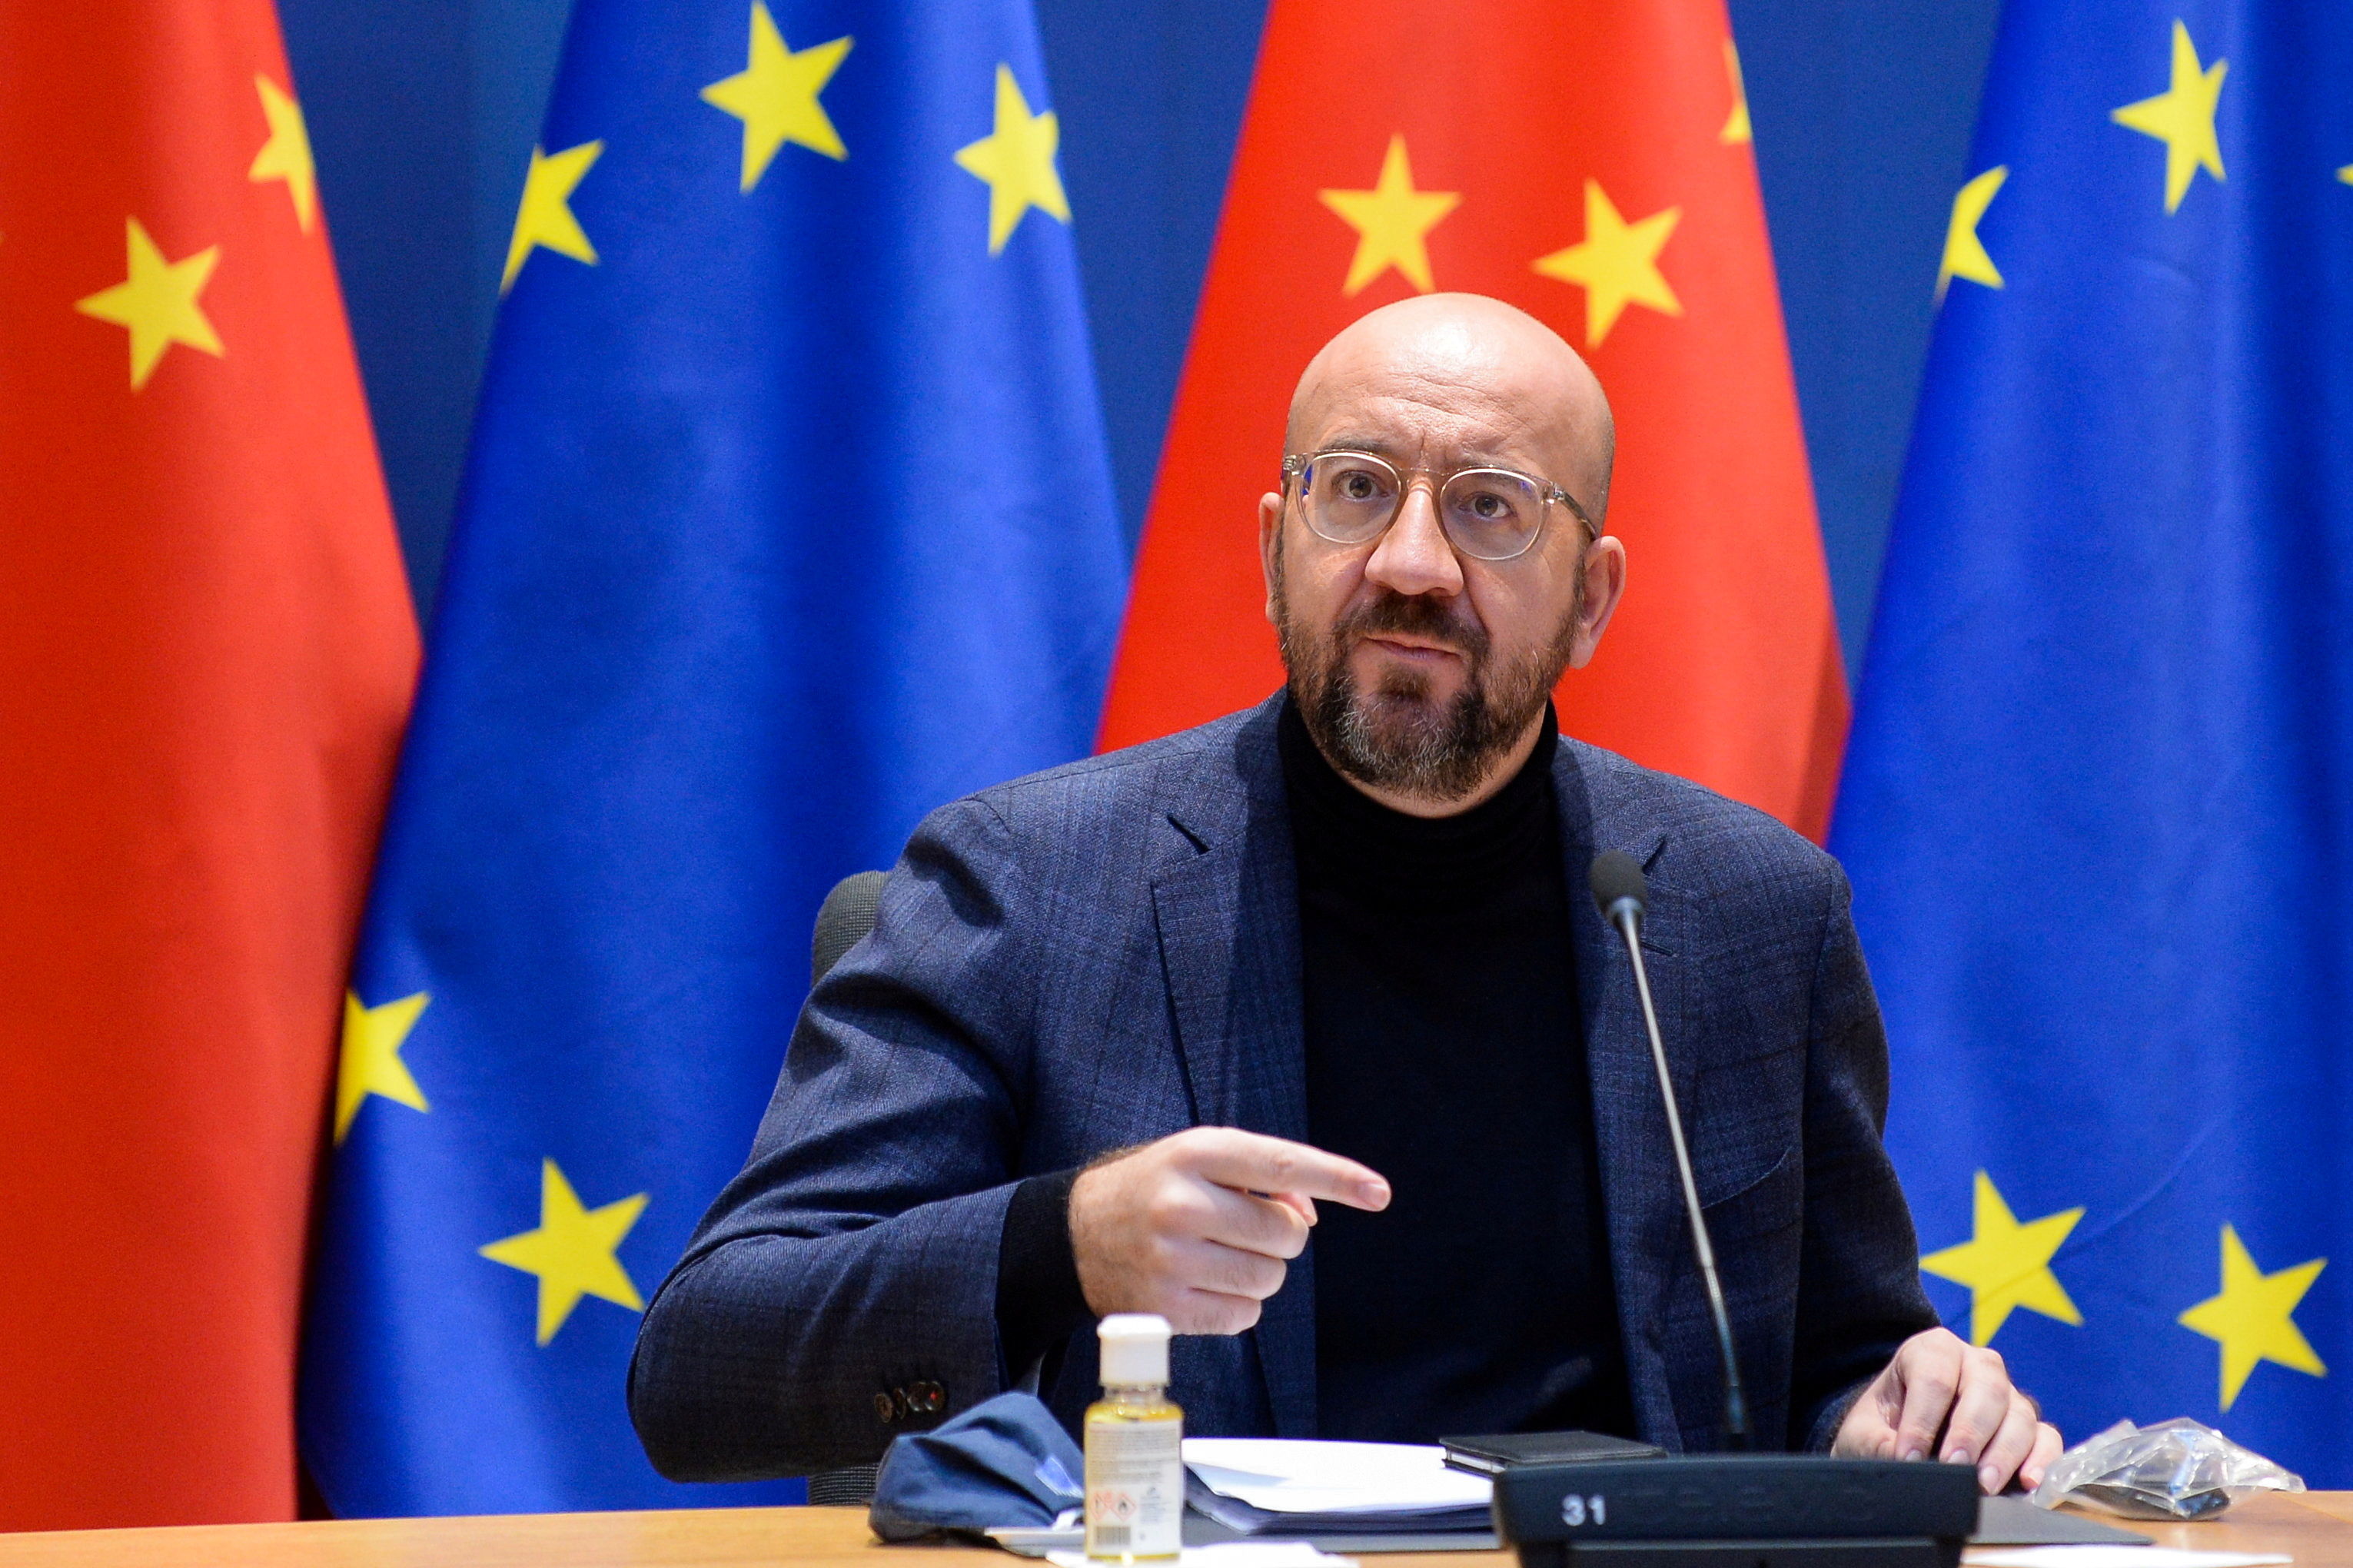 European Council President Charles Michel gestures during a video conference with European Commission President Ursula von der Leyen, German Chancellor Angela Merkel, French President Emmanuel Macron and Chinese President Xi Jinping, in Brussels, Belgium December 30, 2020. REUTERS/Johanna Geron/Pool/File Photo